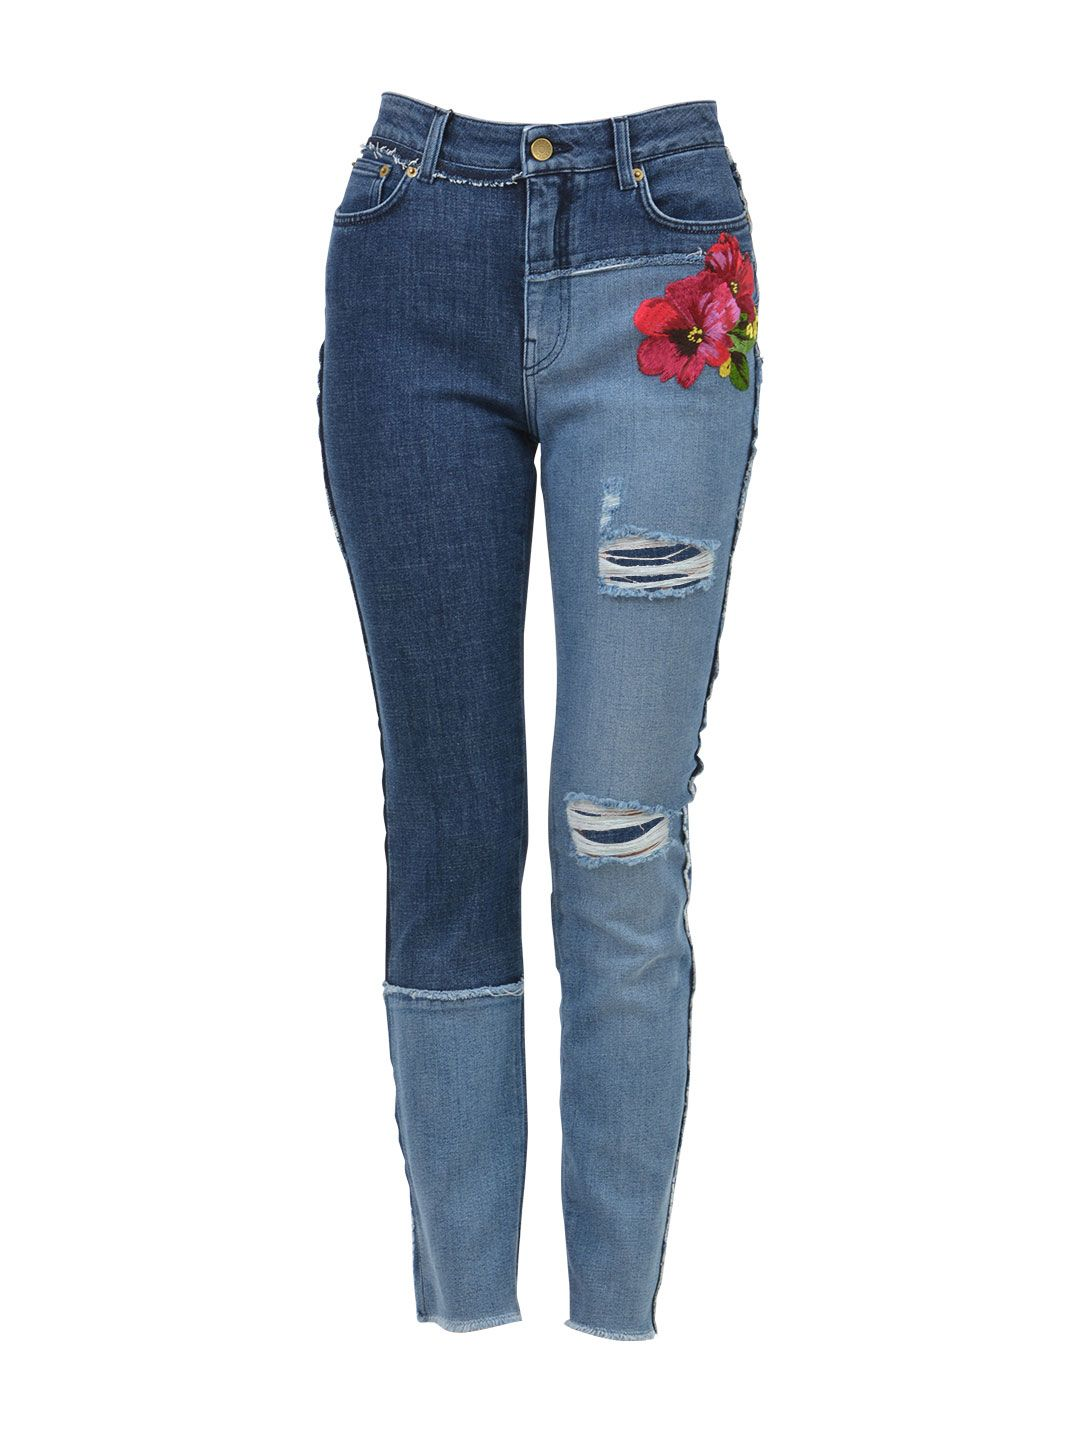 Dolce & Gabbana Embroidered Skinny Jeans